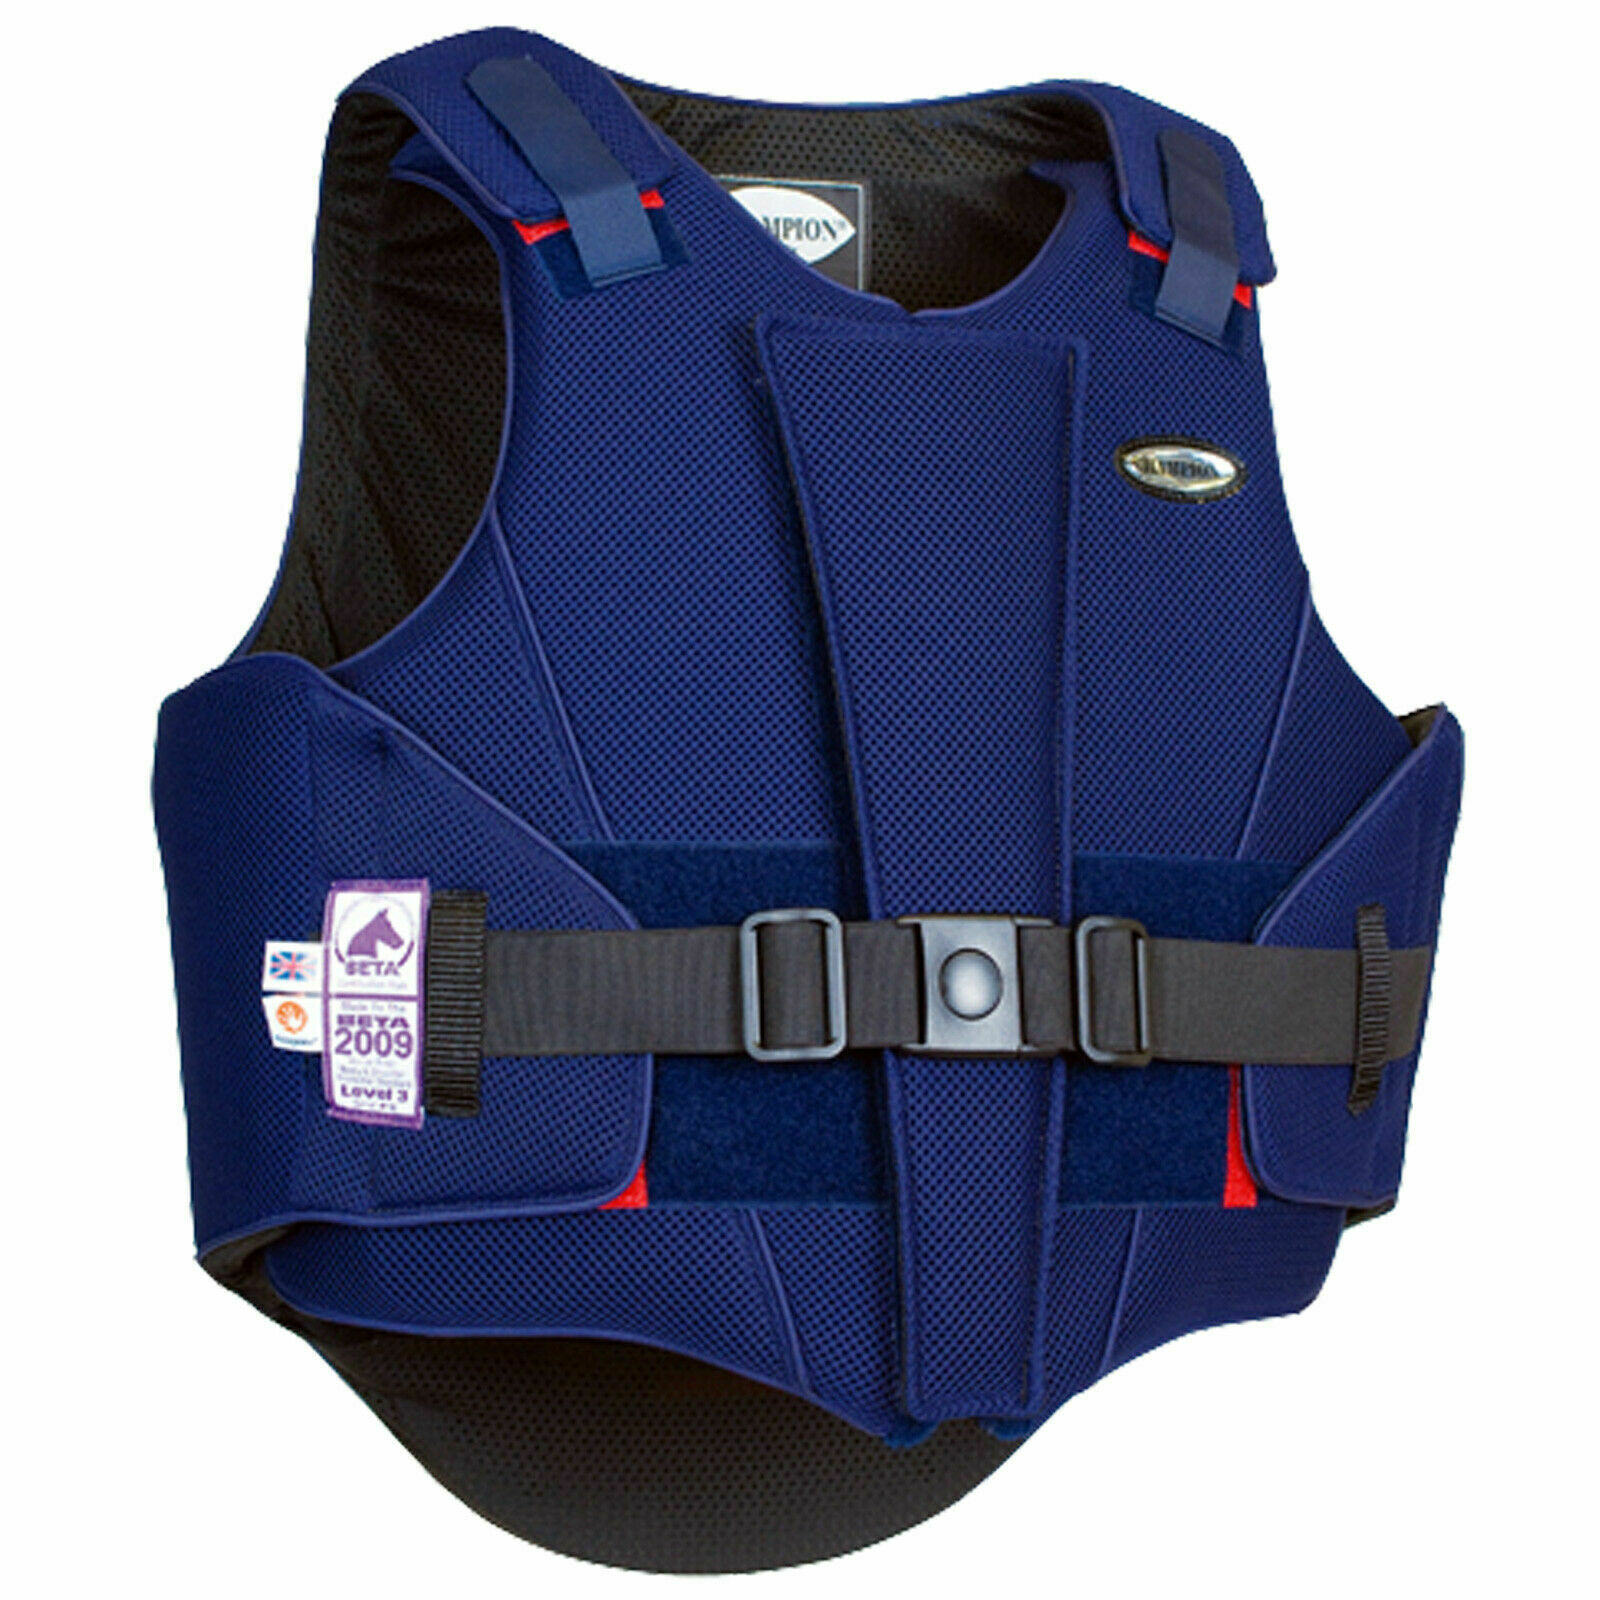 Champion adultes XL Body Prougeector Beta 2009... la concurrence standard-X country